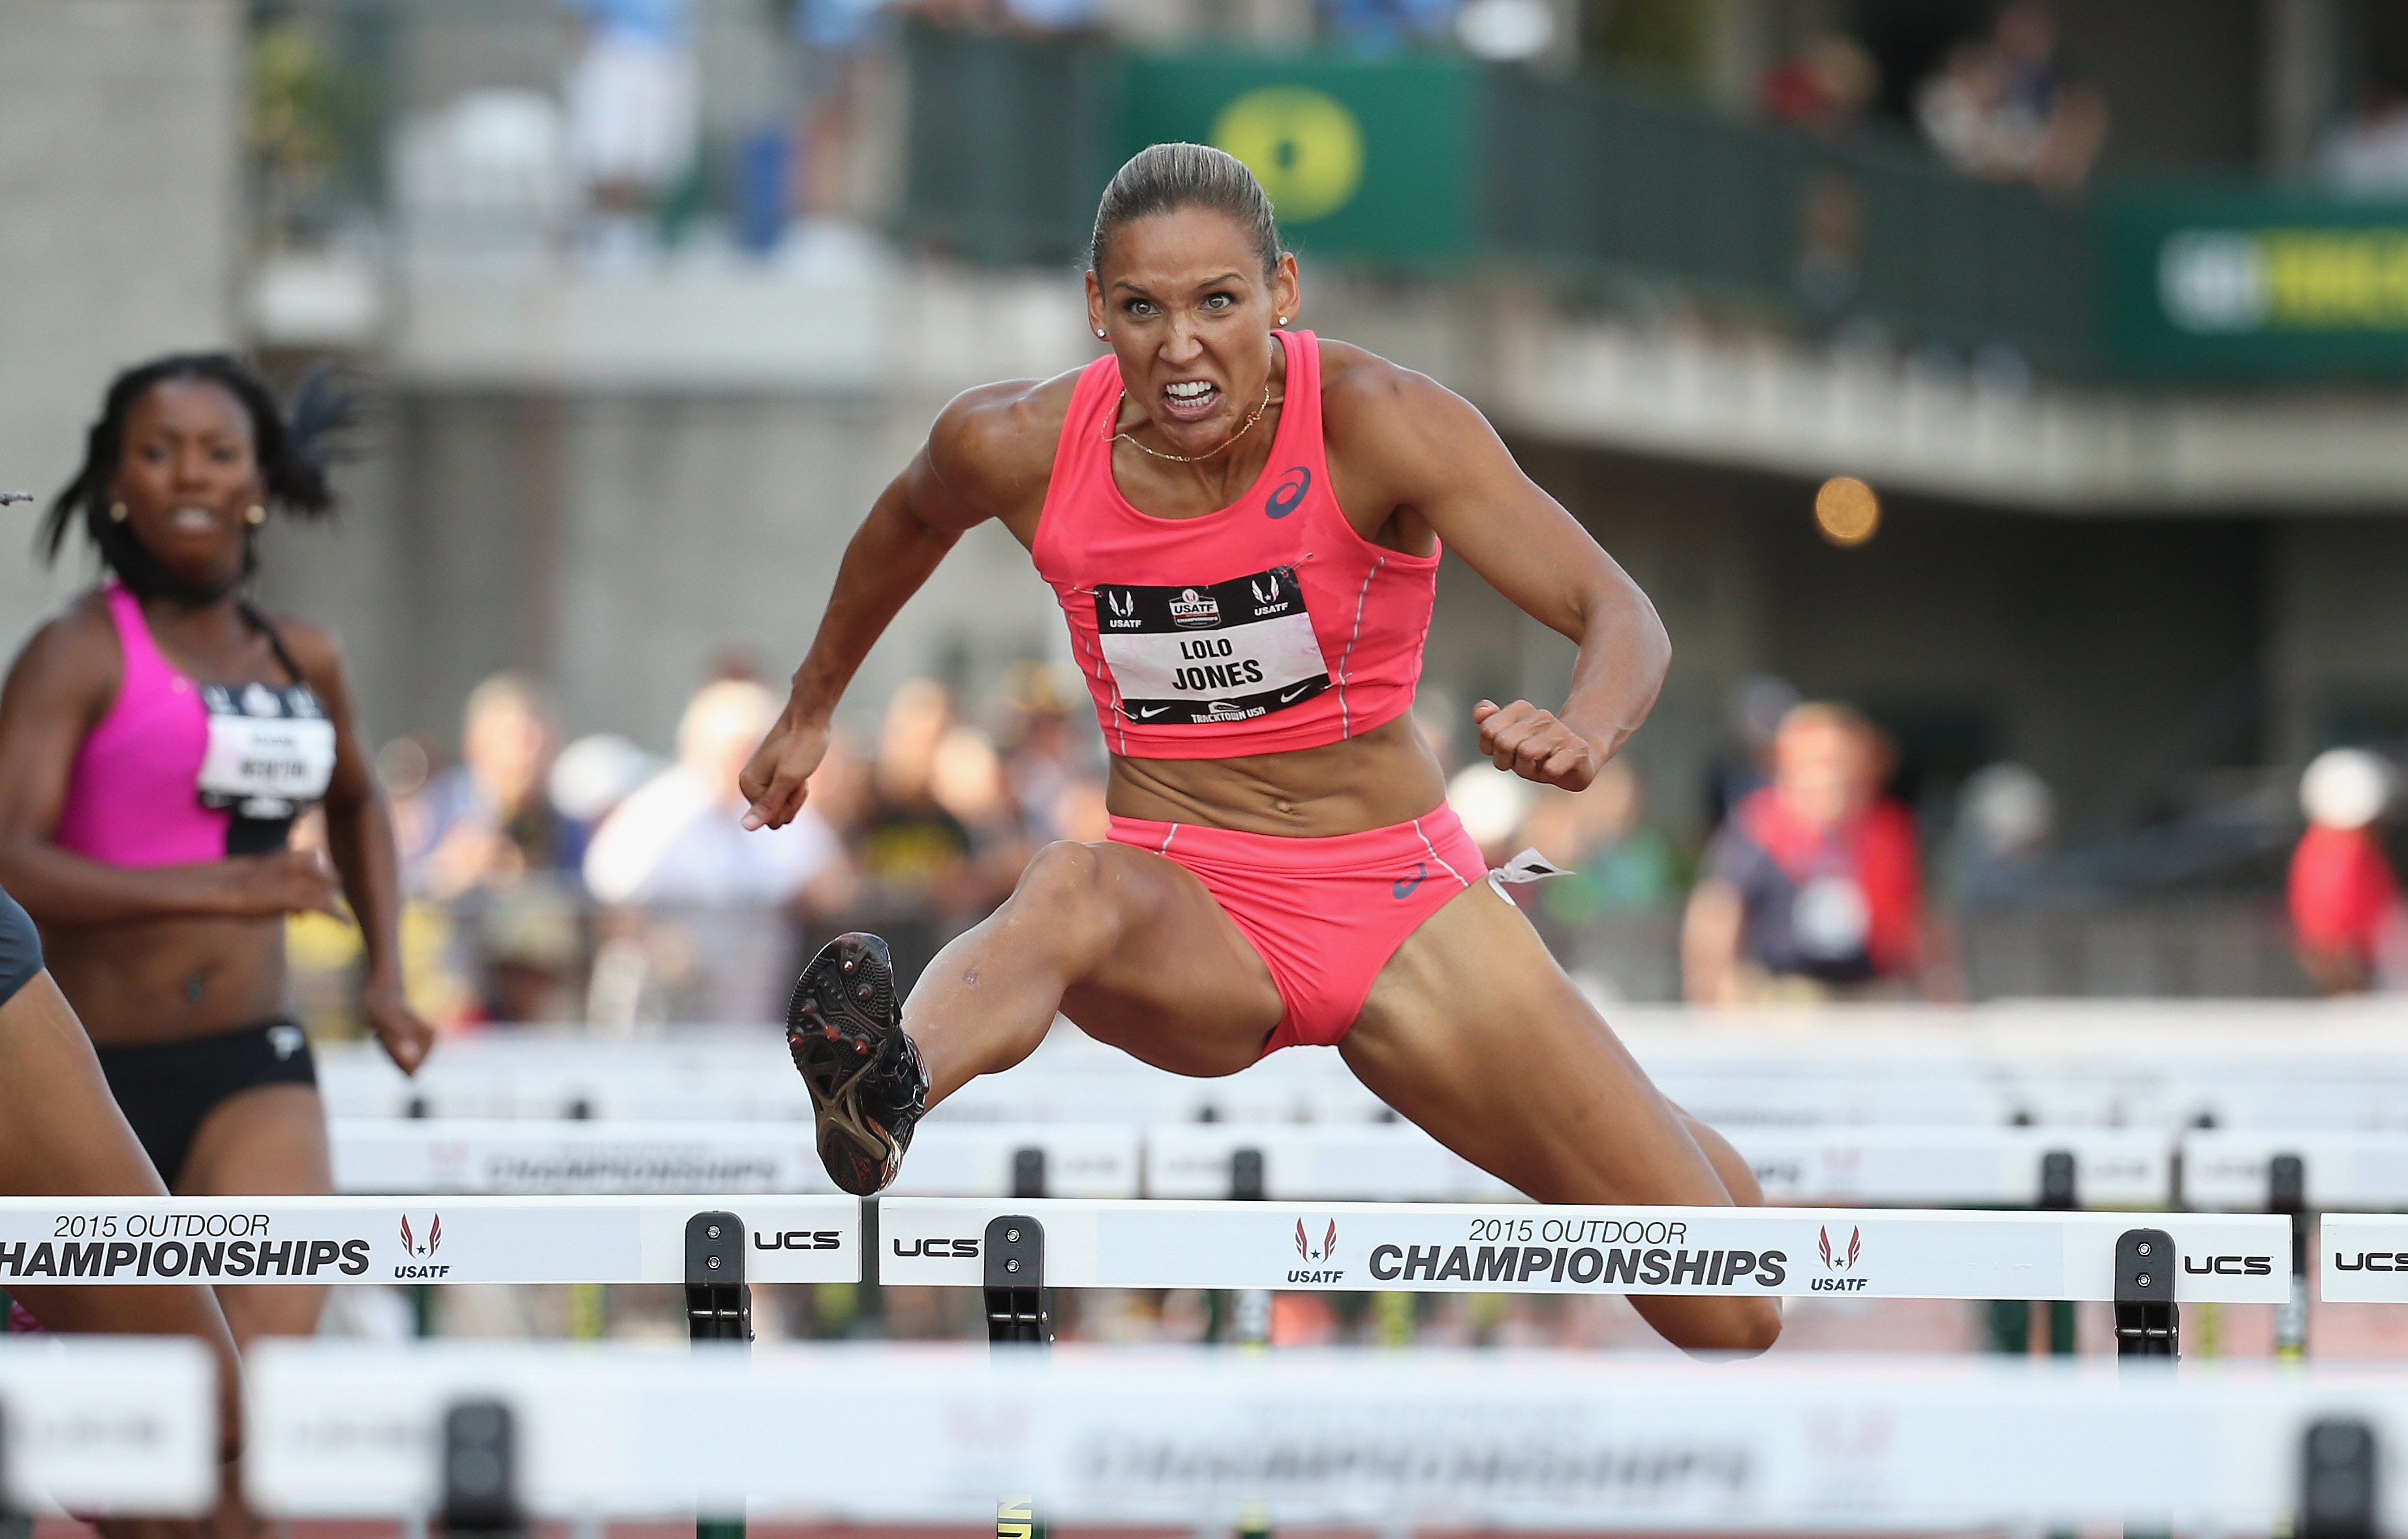 Lolo Jones selection to Olympic bobsled team criticized - CBS News